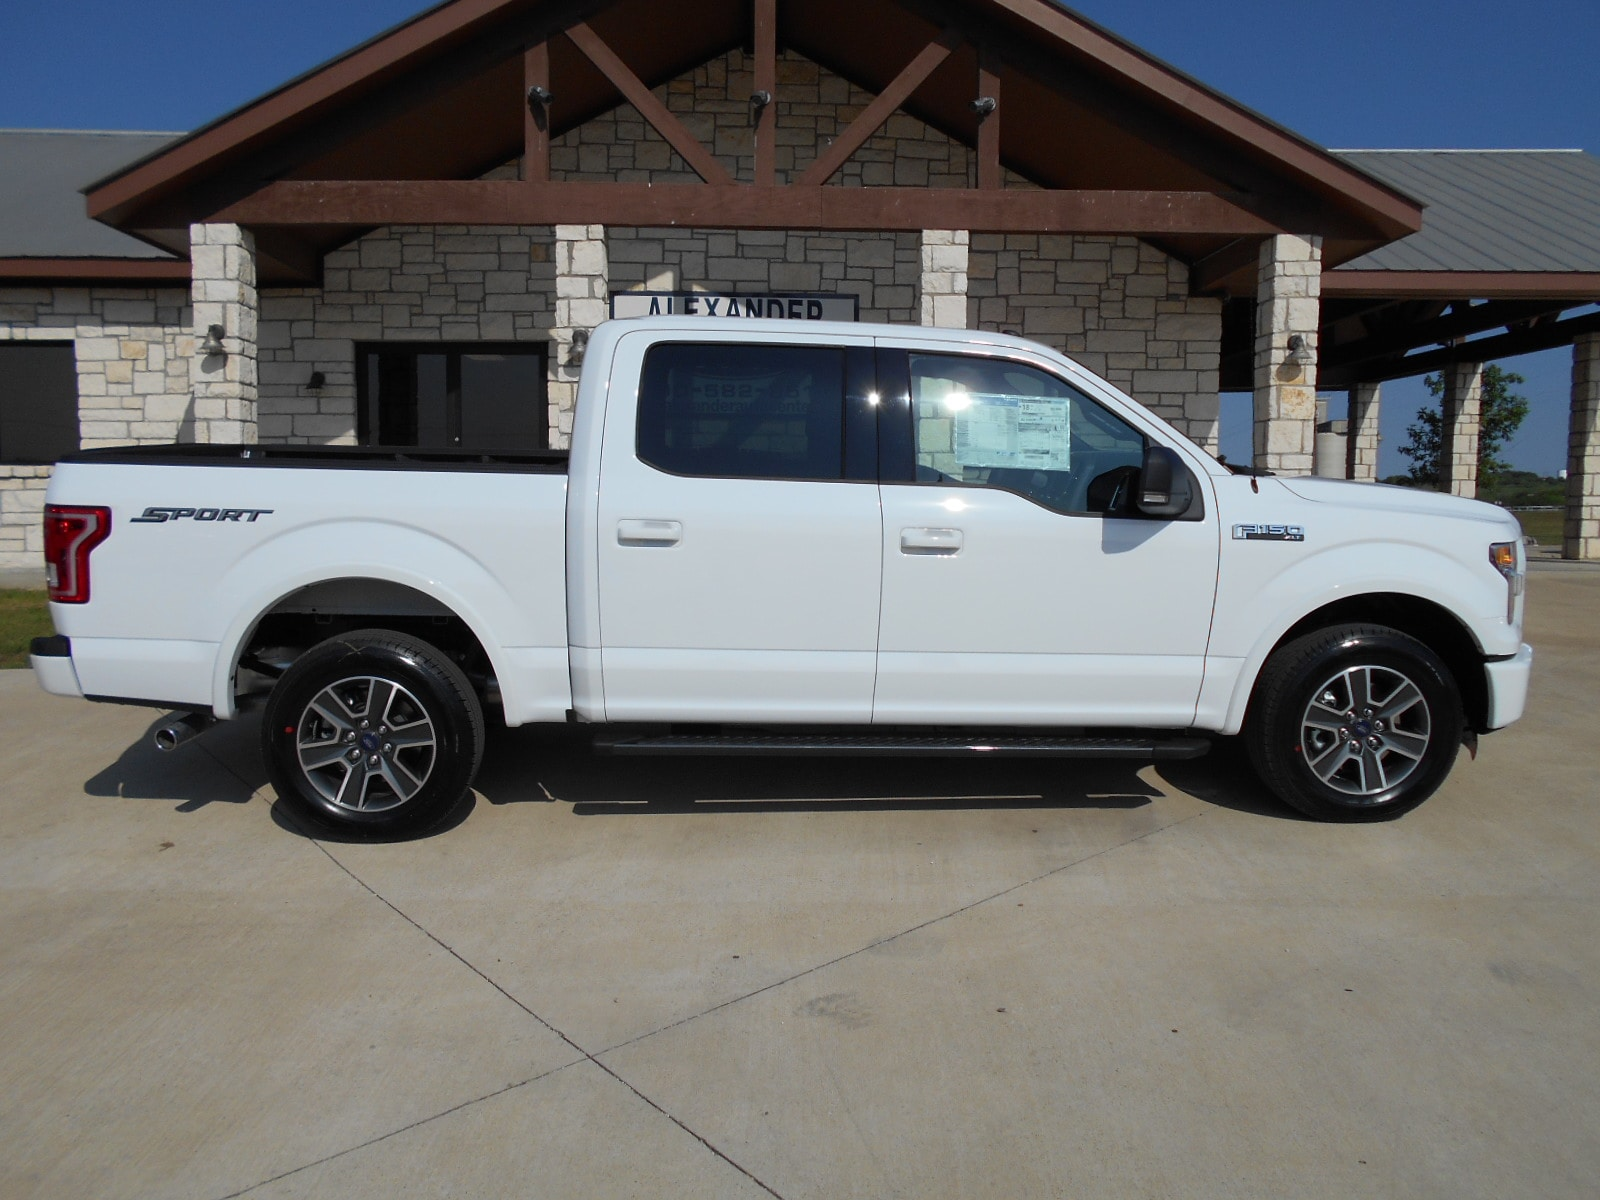 new 2016 ford f 150 truck supercrew cab oxford white in kenedy tx 1ftew1cf0gke12878 for sale. Black Bedroom Furniture Sets. Home Design Ideas